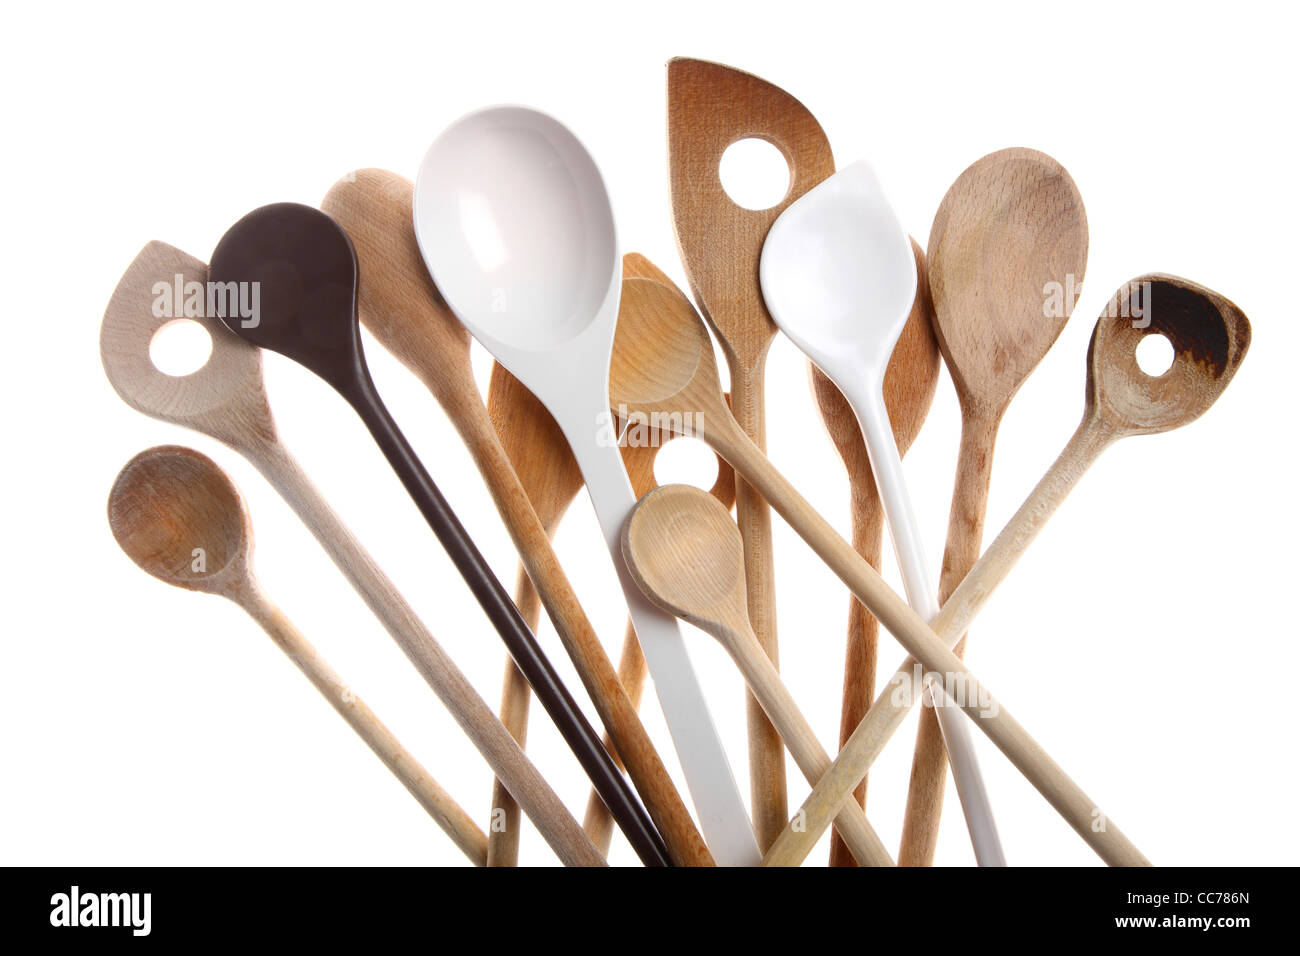 Various Types Of Cooking Spoons, Wooden Spoons. Kitchen Devices.